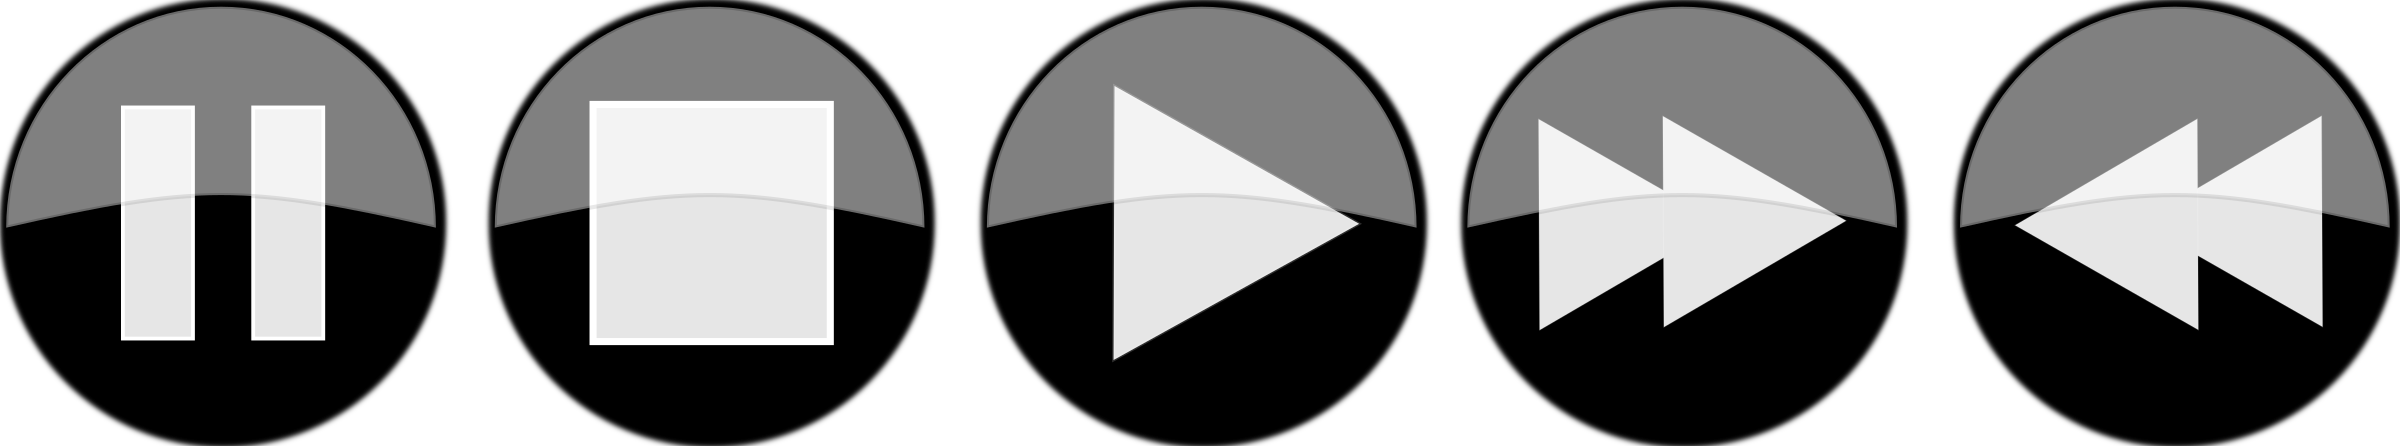 Glossy media player buttons - Inverted by portablejim